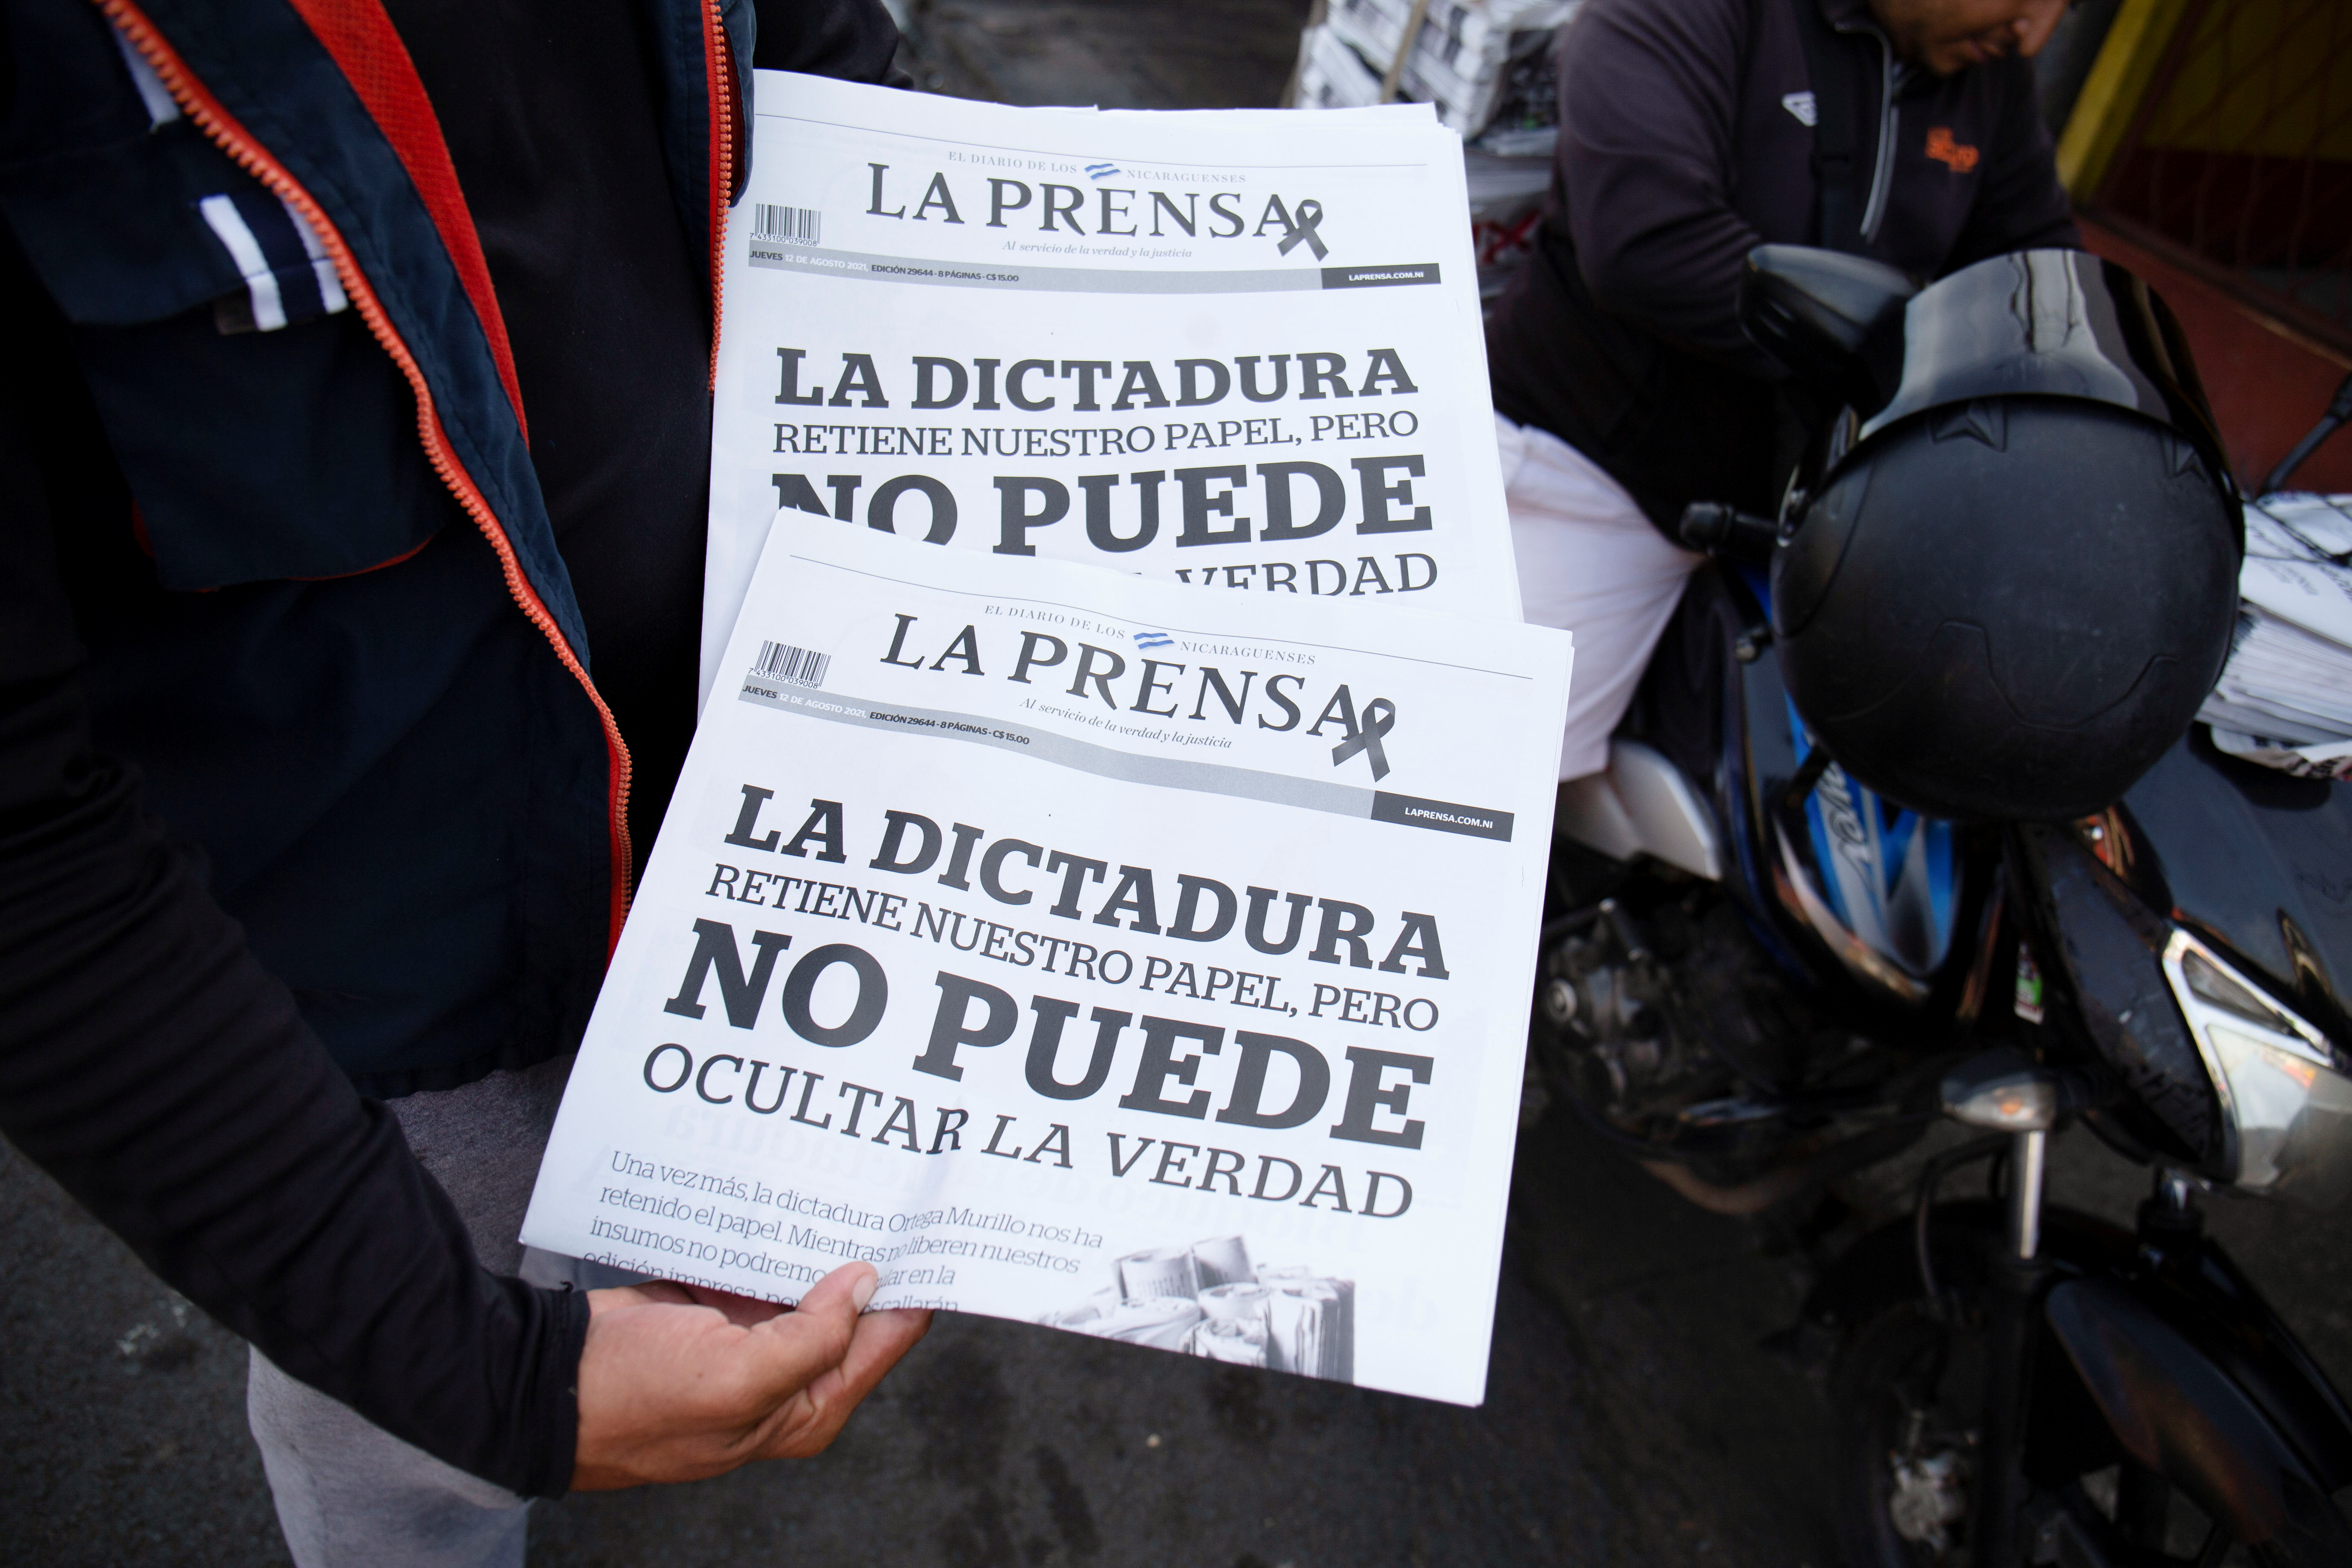 A delivery man shows La Prensa, Nicaragua's only print newspaper, which will no longer issue a print edition complaining that the administration of President Daniel Ortega was withholding the paper it uses for publishing, in Managua, Nicaragua August 12, 2021. The front page reads: